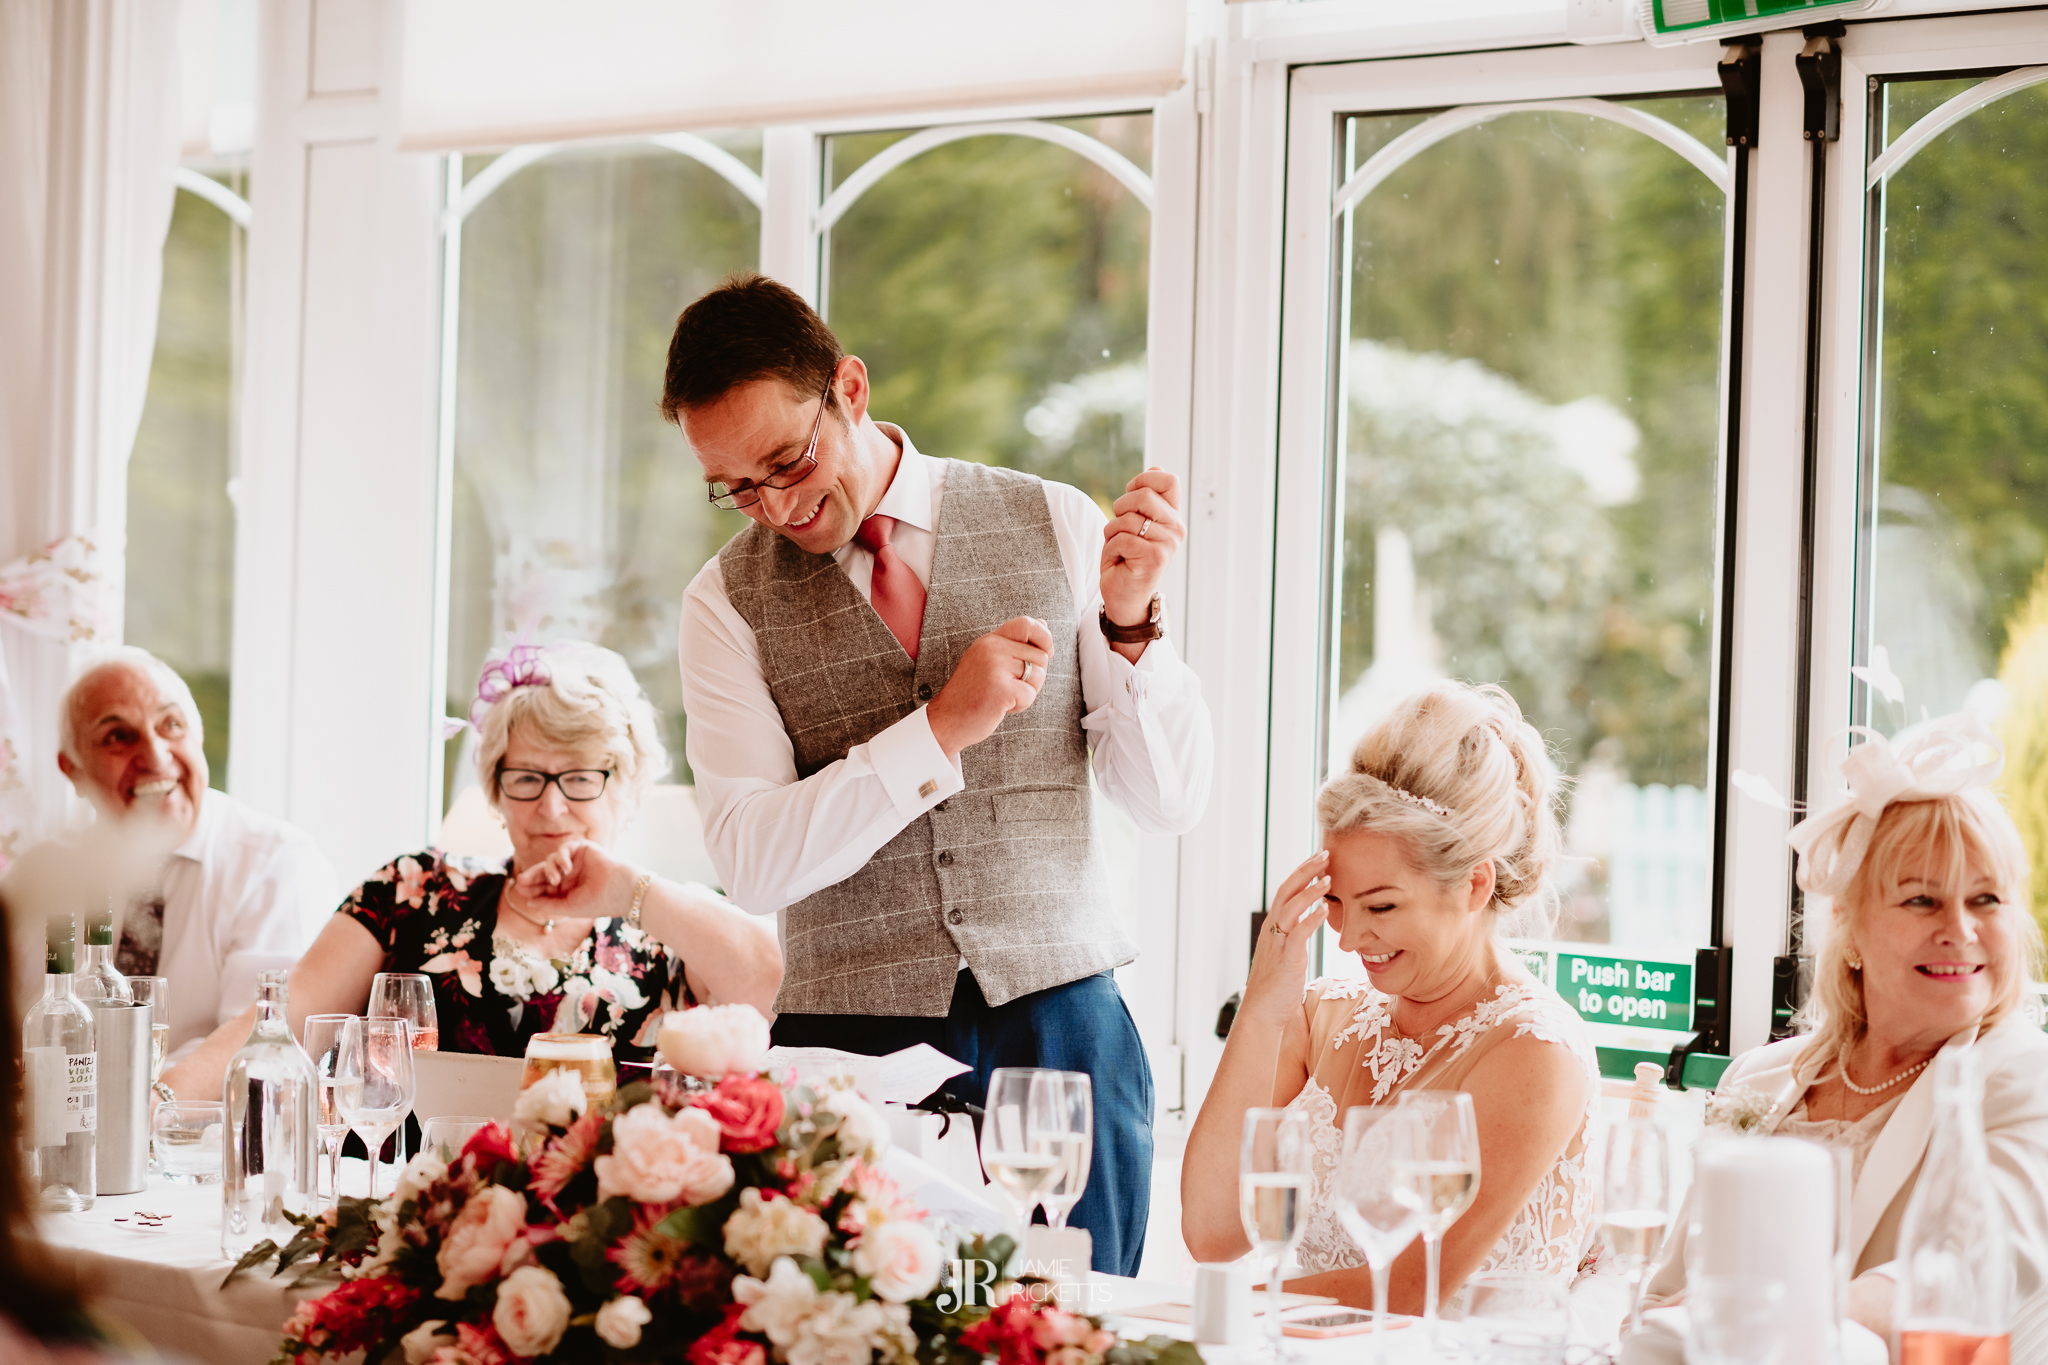 Wroxeter-Hotel-Wedding-Photography-In-Shropshire-By-Shropshire-Wedding-Photographer-Jamie-Ricketts-172.JPG